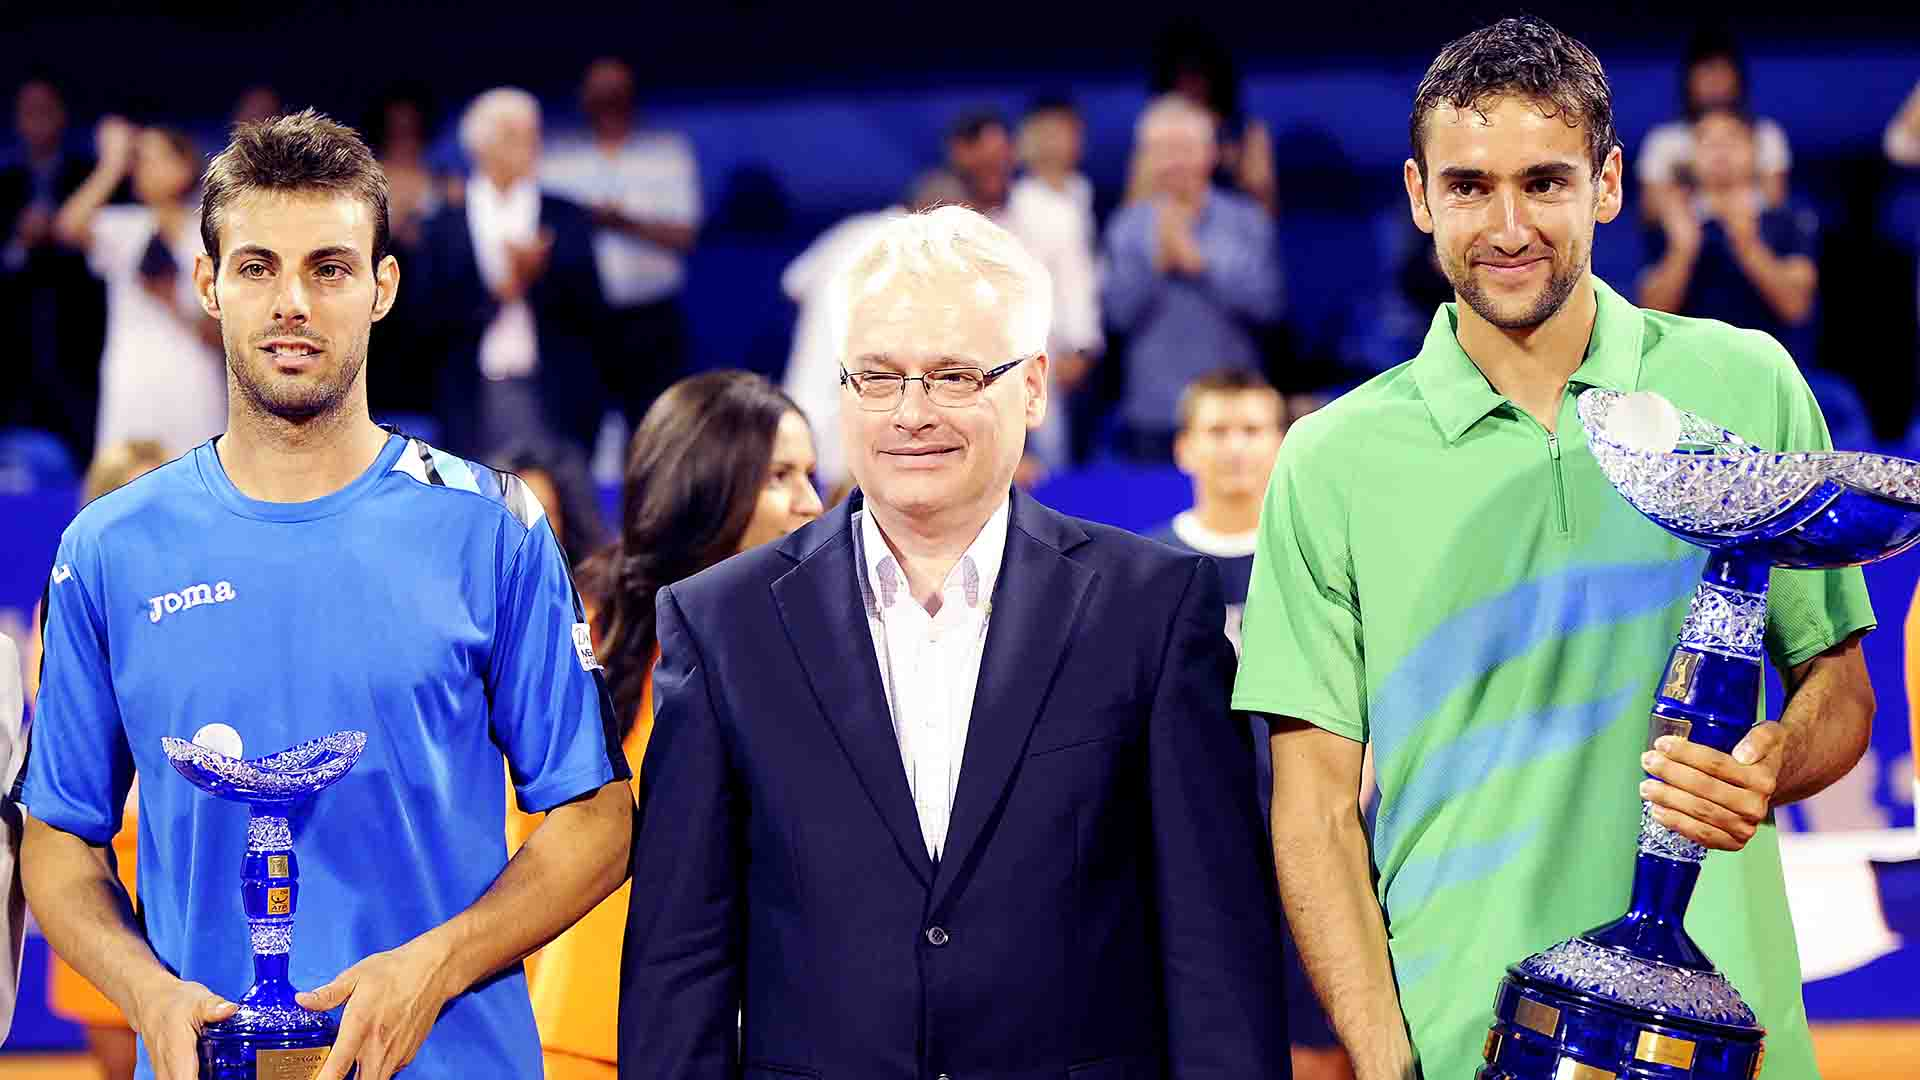 <a href='/en/players/marin-cilic/c977/overview'>Marin Cilic</a> captured his first ATP Tour title on clay at the 2012 <a href='/en/tournaments/umag/439/overview'>Plava Laguna Croatia Open Umag</a>.